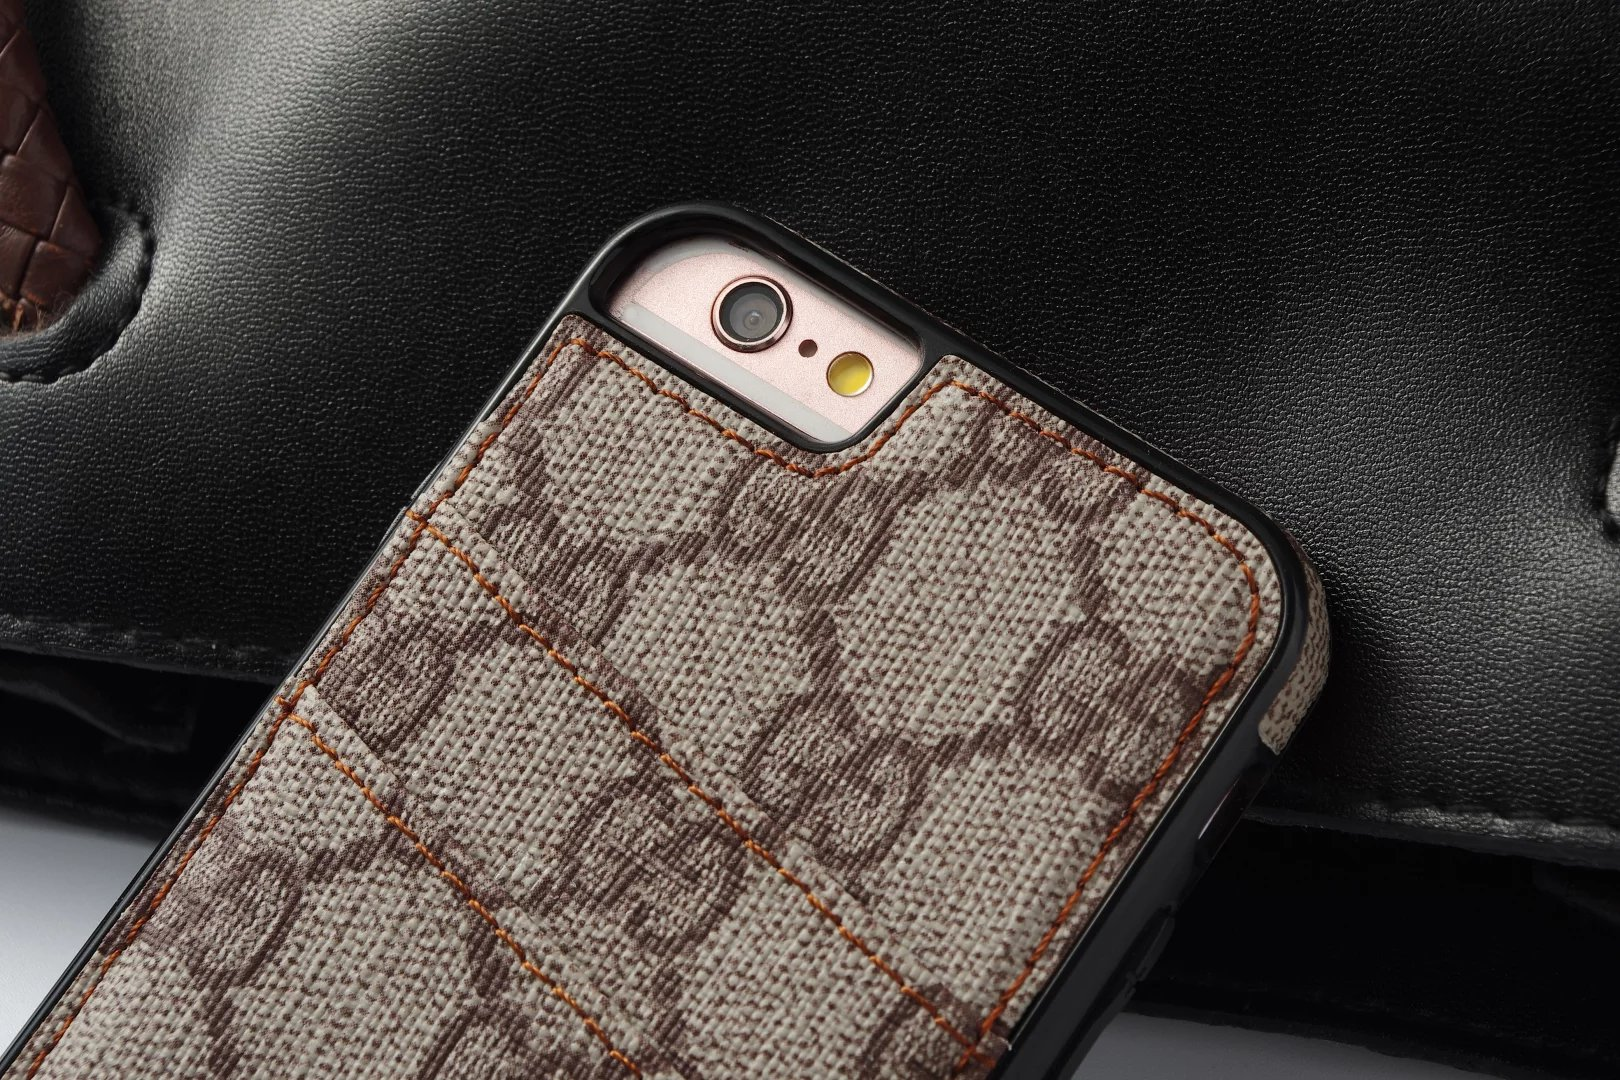 iphone 8 personalized case iphone 8 best case Louis Vuitton iphone 8 case iphone 8 and cases battery case for iphone 8 mophie battery life iphone 8 top cases mophie juice pack for iphone 6 mobile cases & covers